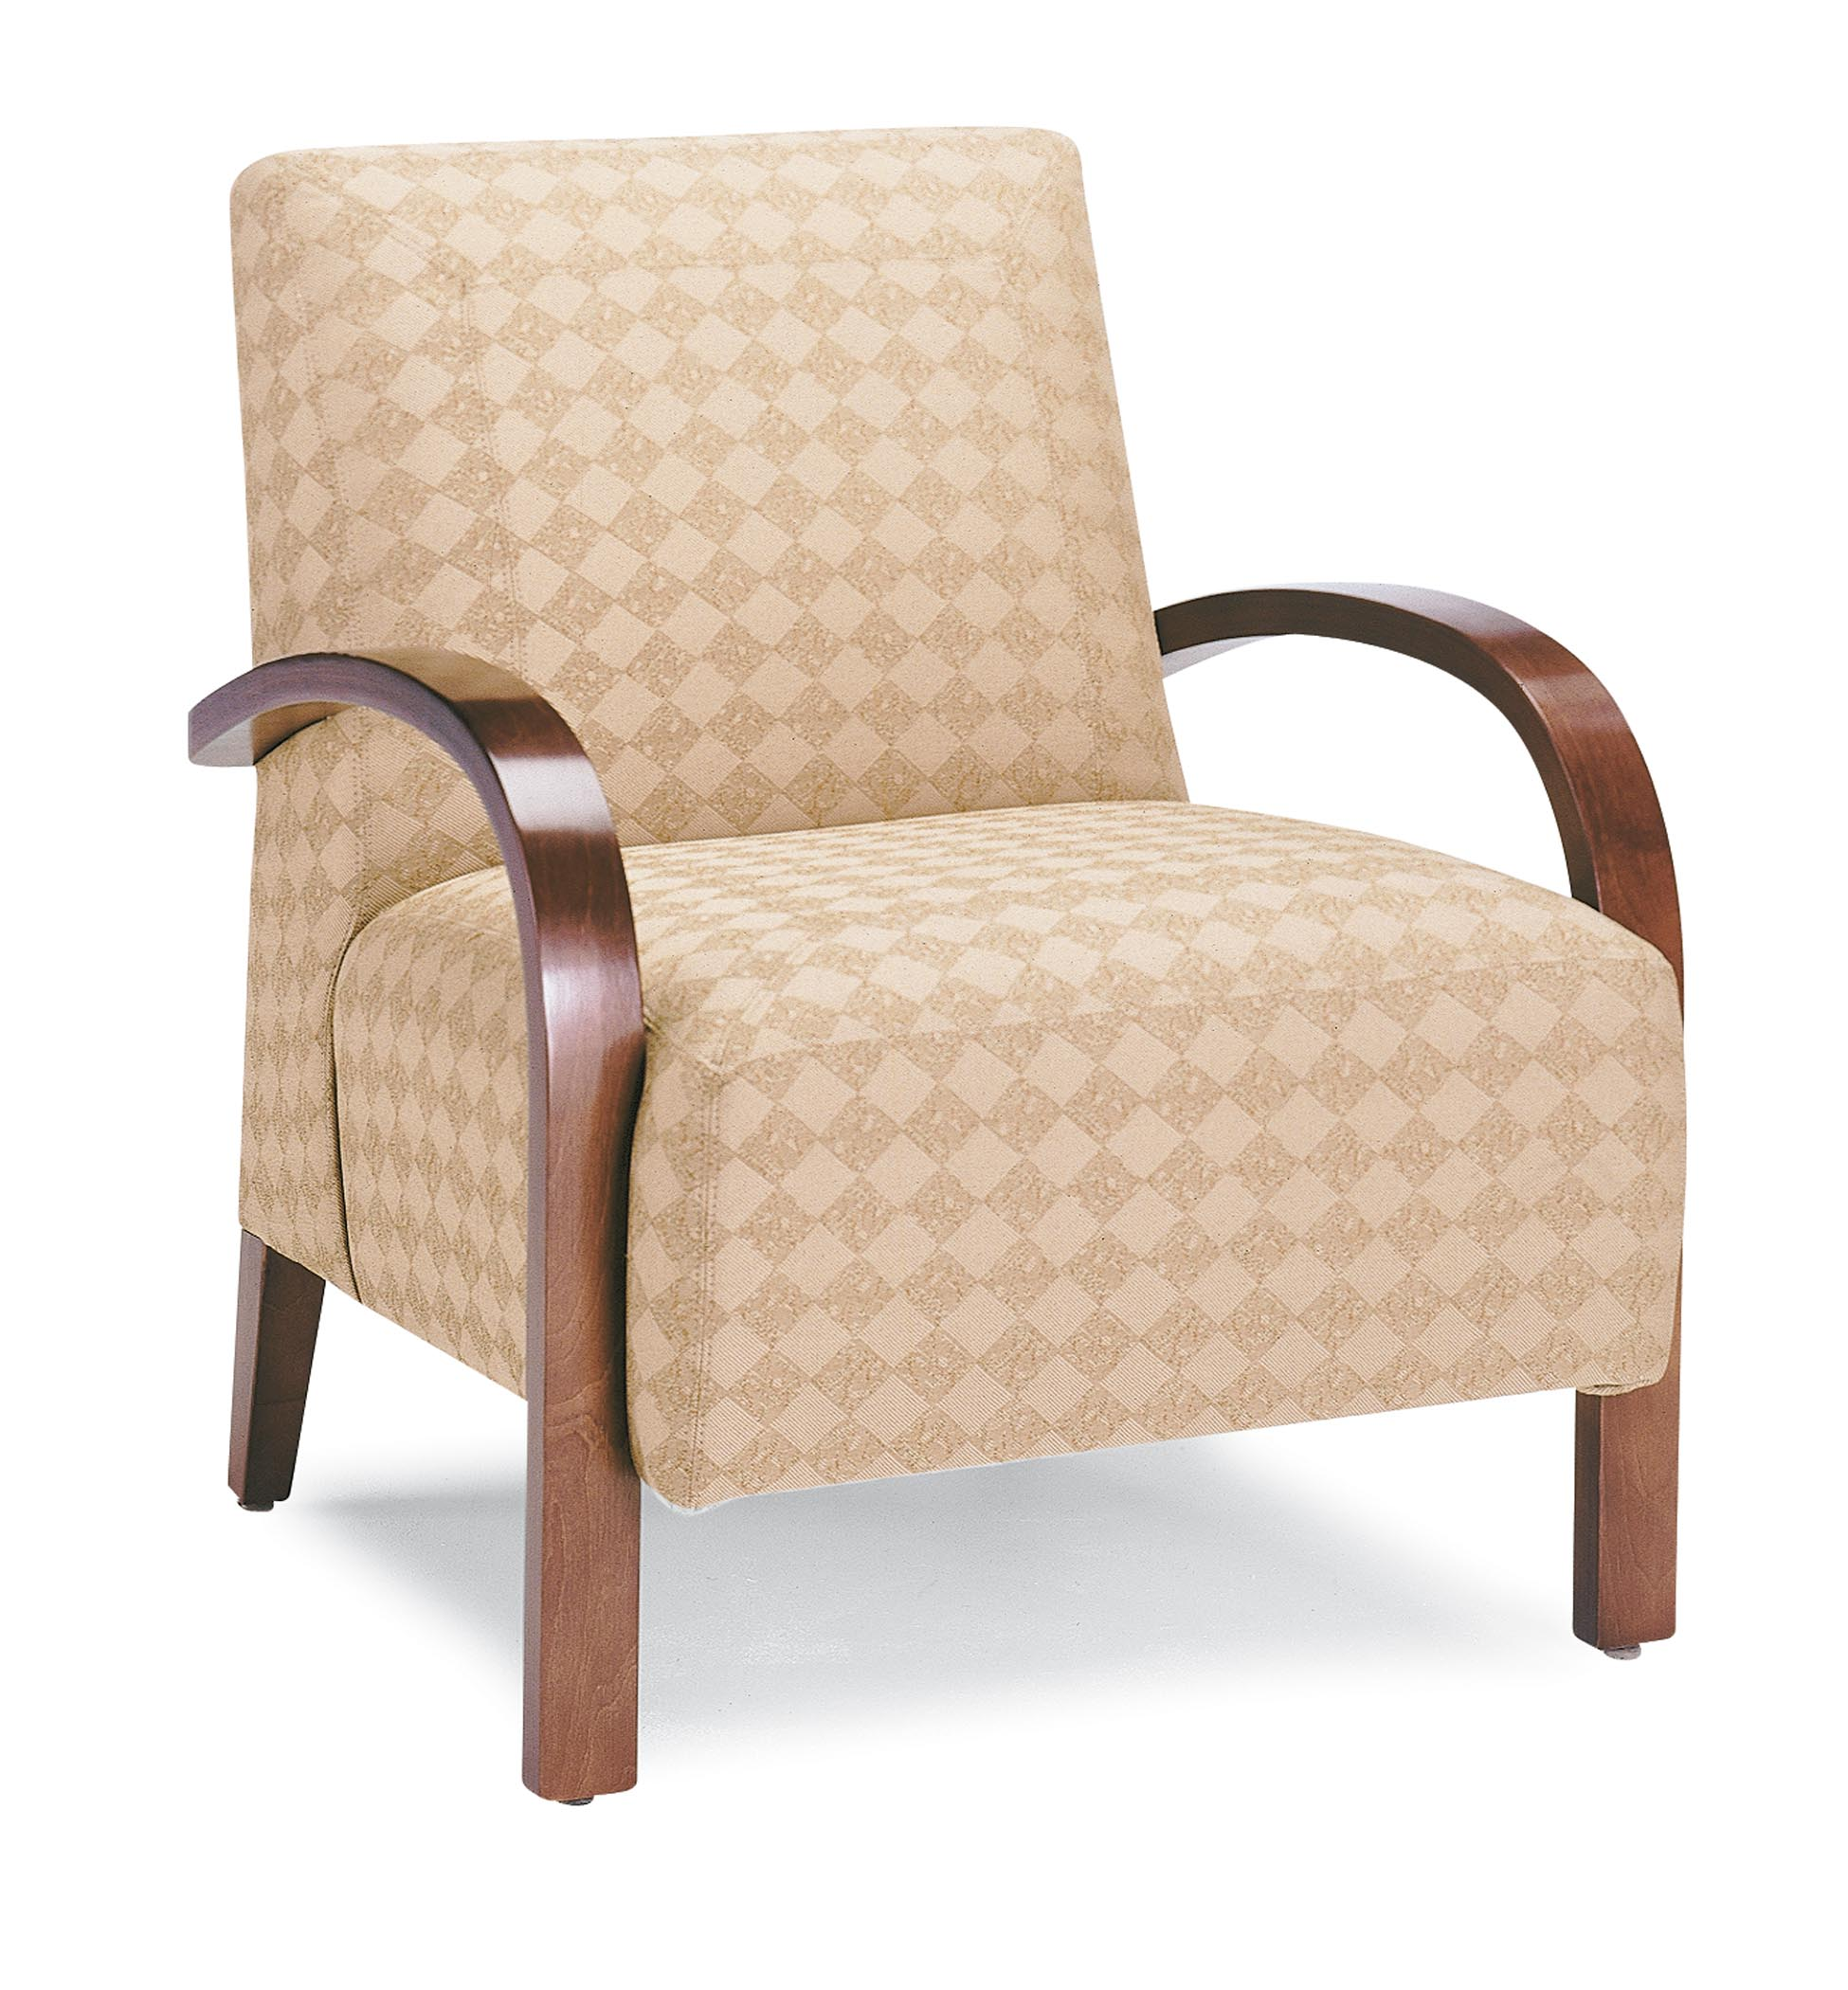 Wooden Arm Chair 7240 Wood Arm Chair